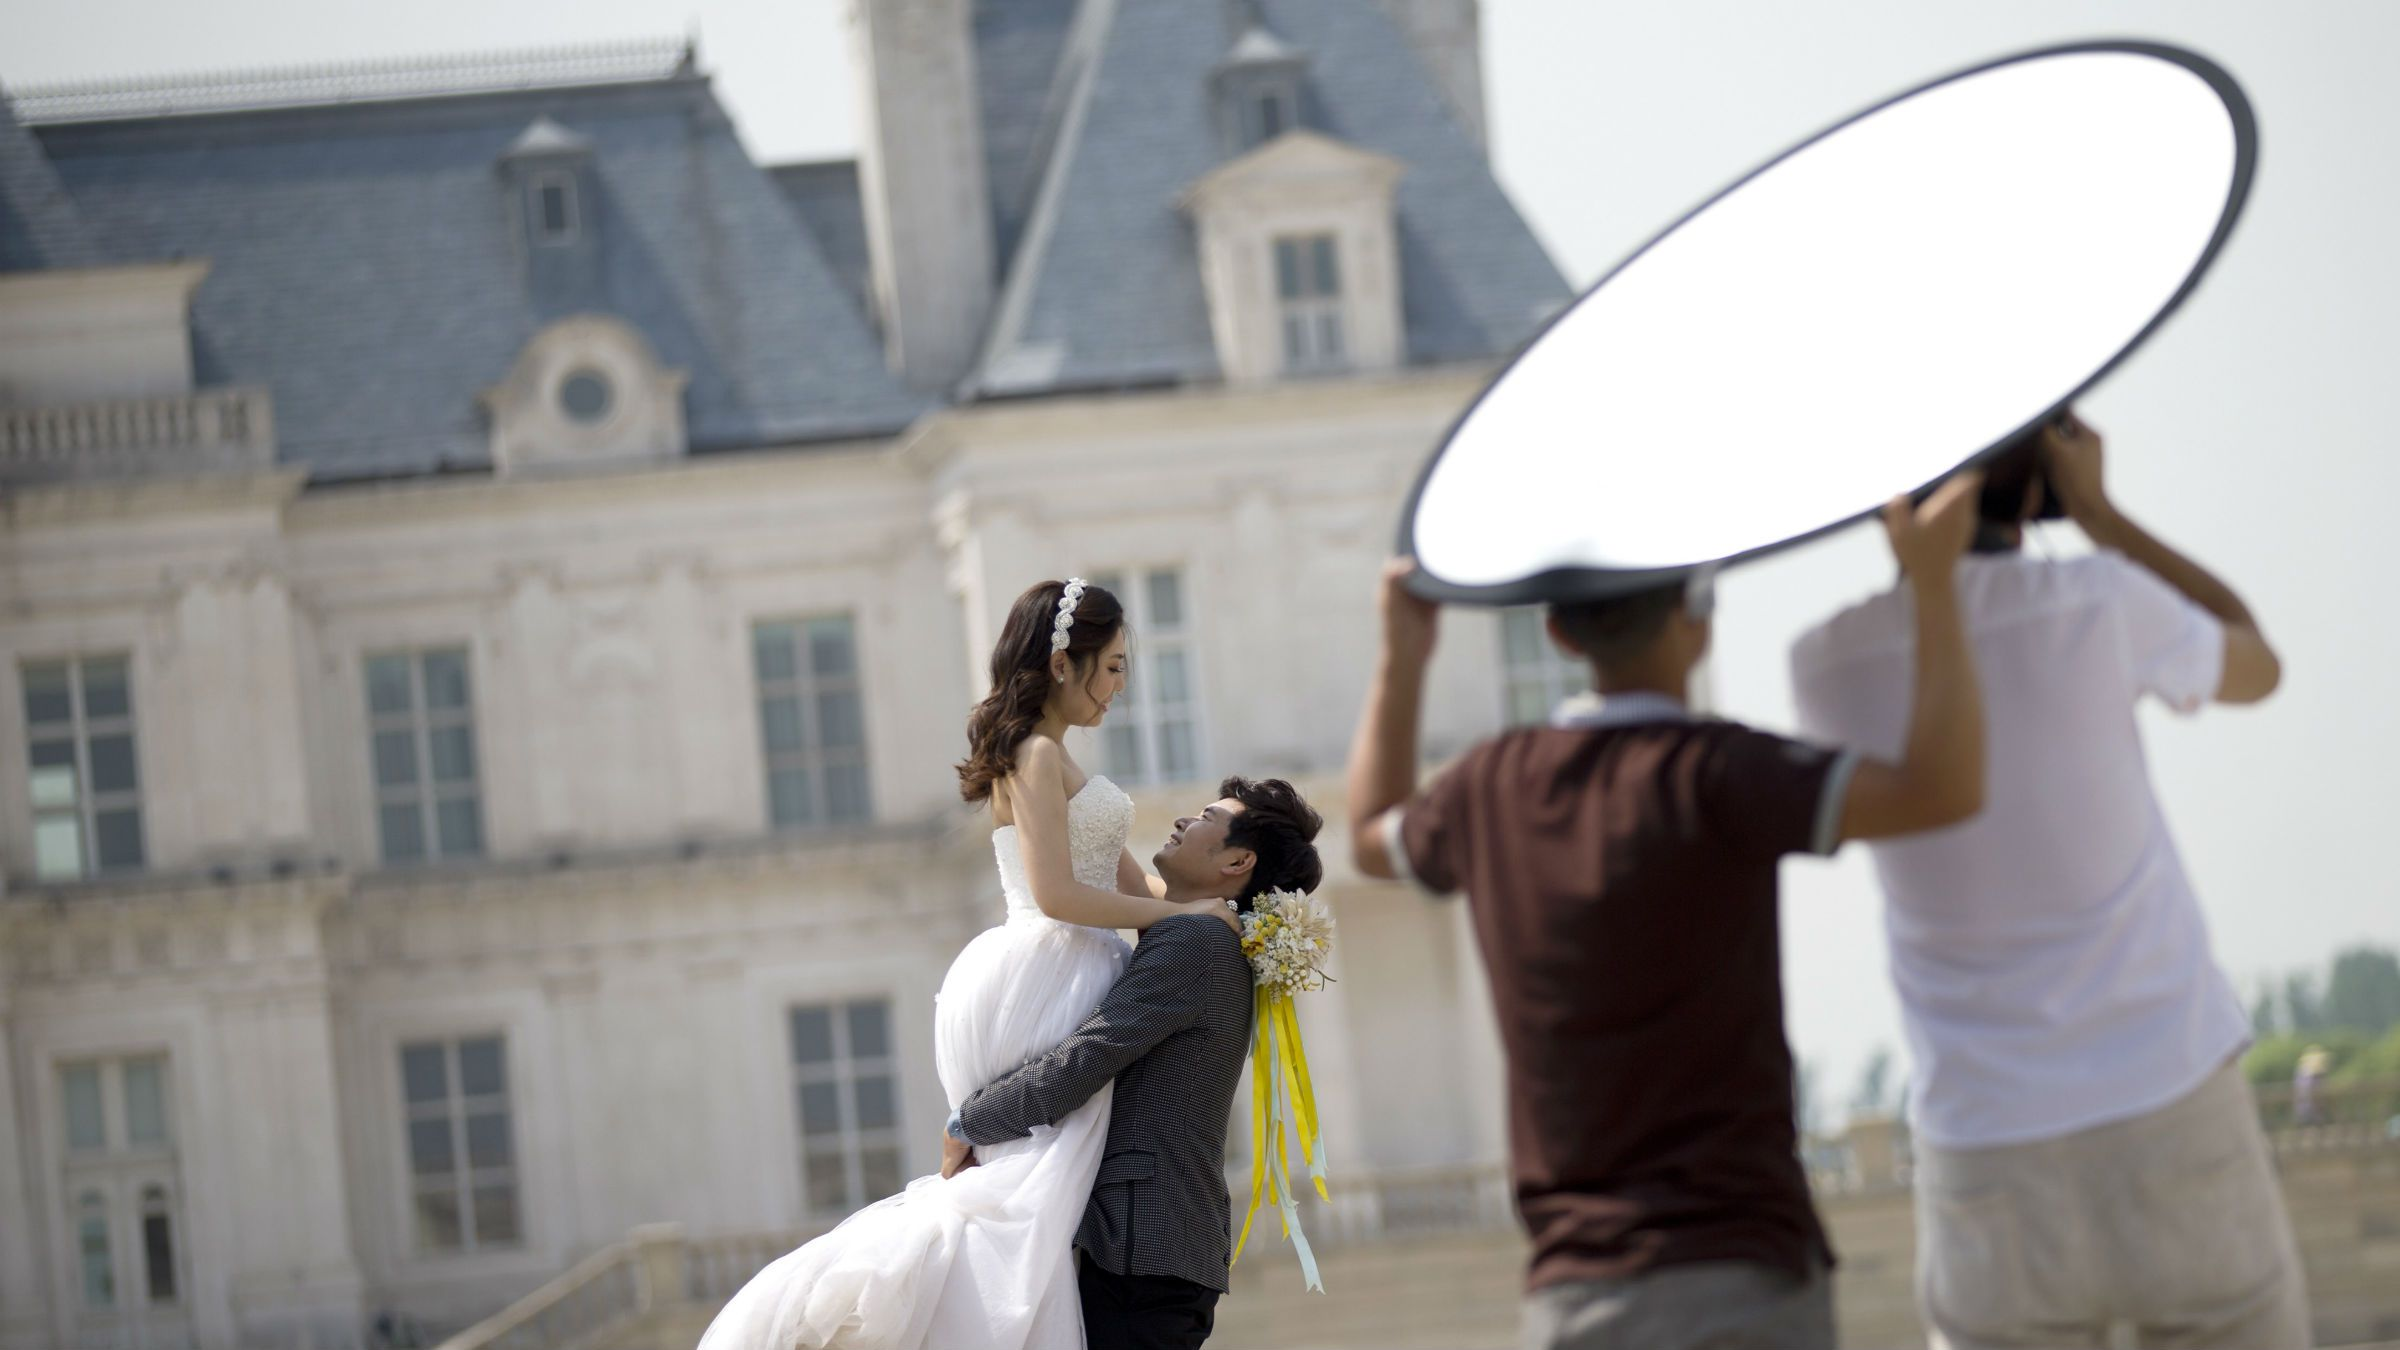 A groom lifts up his bride as they pose for wedding photos in front of the Laffitte Castle Hotel in Changping District, on the outskirts of Beijing, China Tuesday, June 24, 2014. Laffite Hotel was built on the model of Chateau de Maison-Laffitte in France. The building, majestic and luxurious replica of the Fontainebleau Palace in Paris, is a popular scenic spot as many newly wed couples visit for their wedding photos. (AP Photo/Andy Wong)